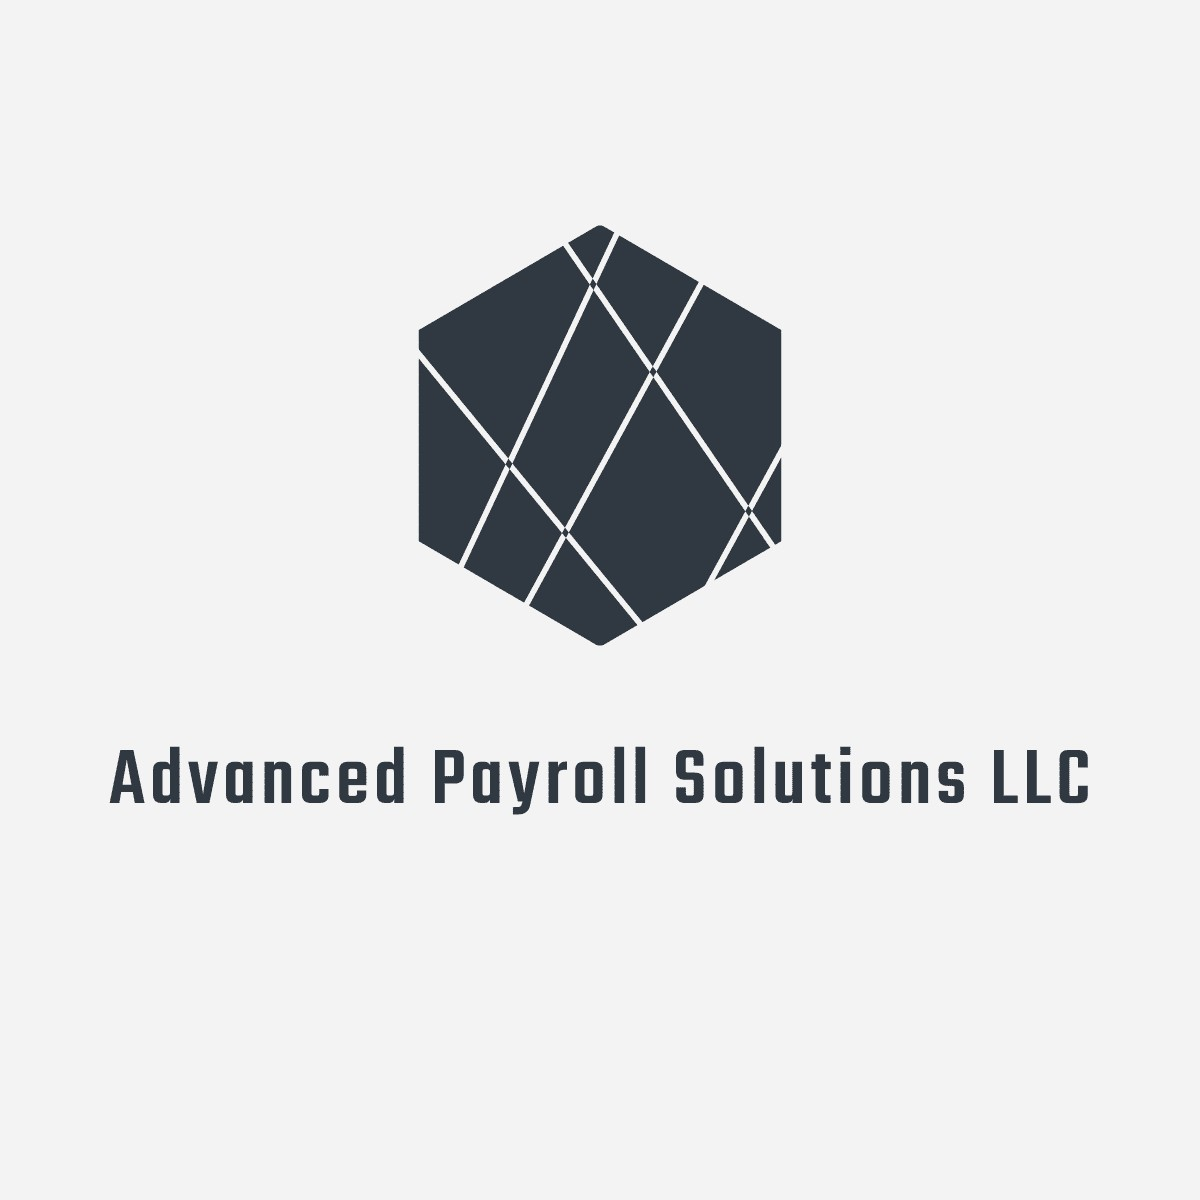 Advanced Payroll Solutions.jpg